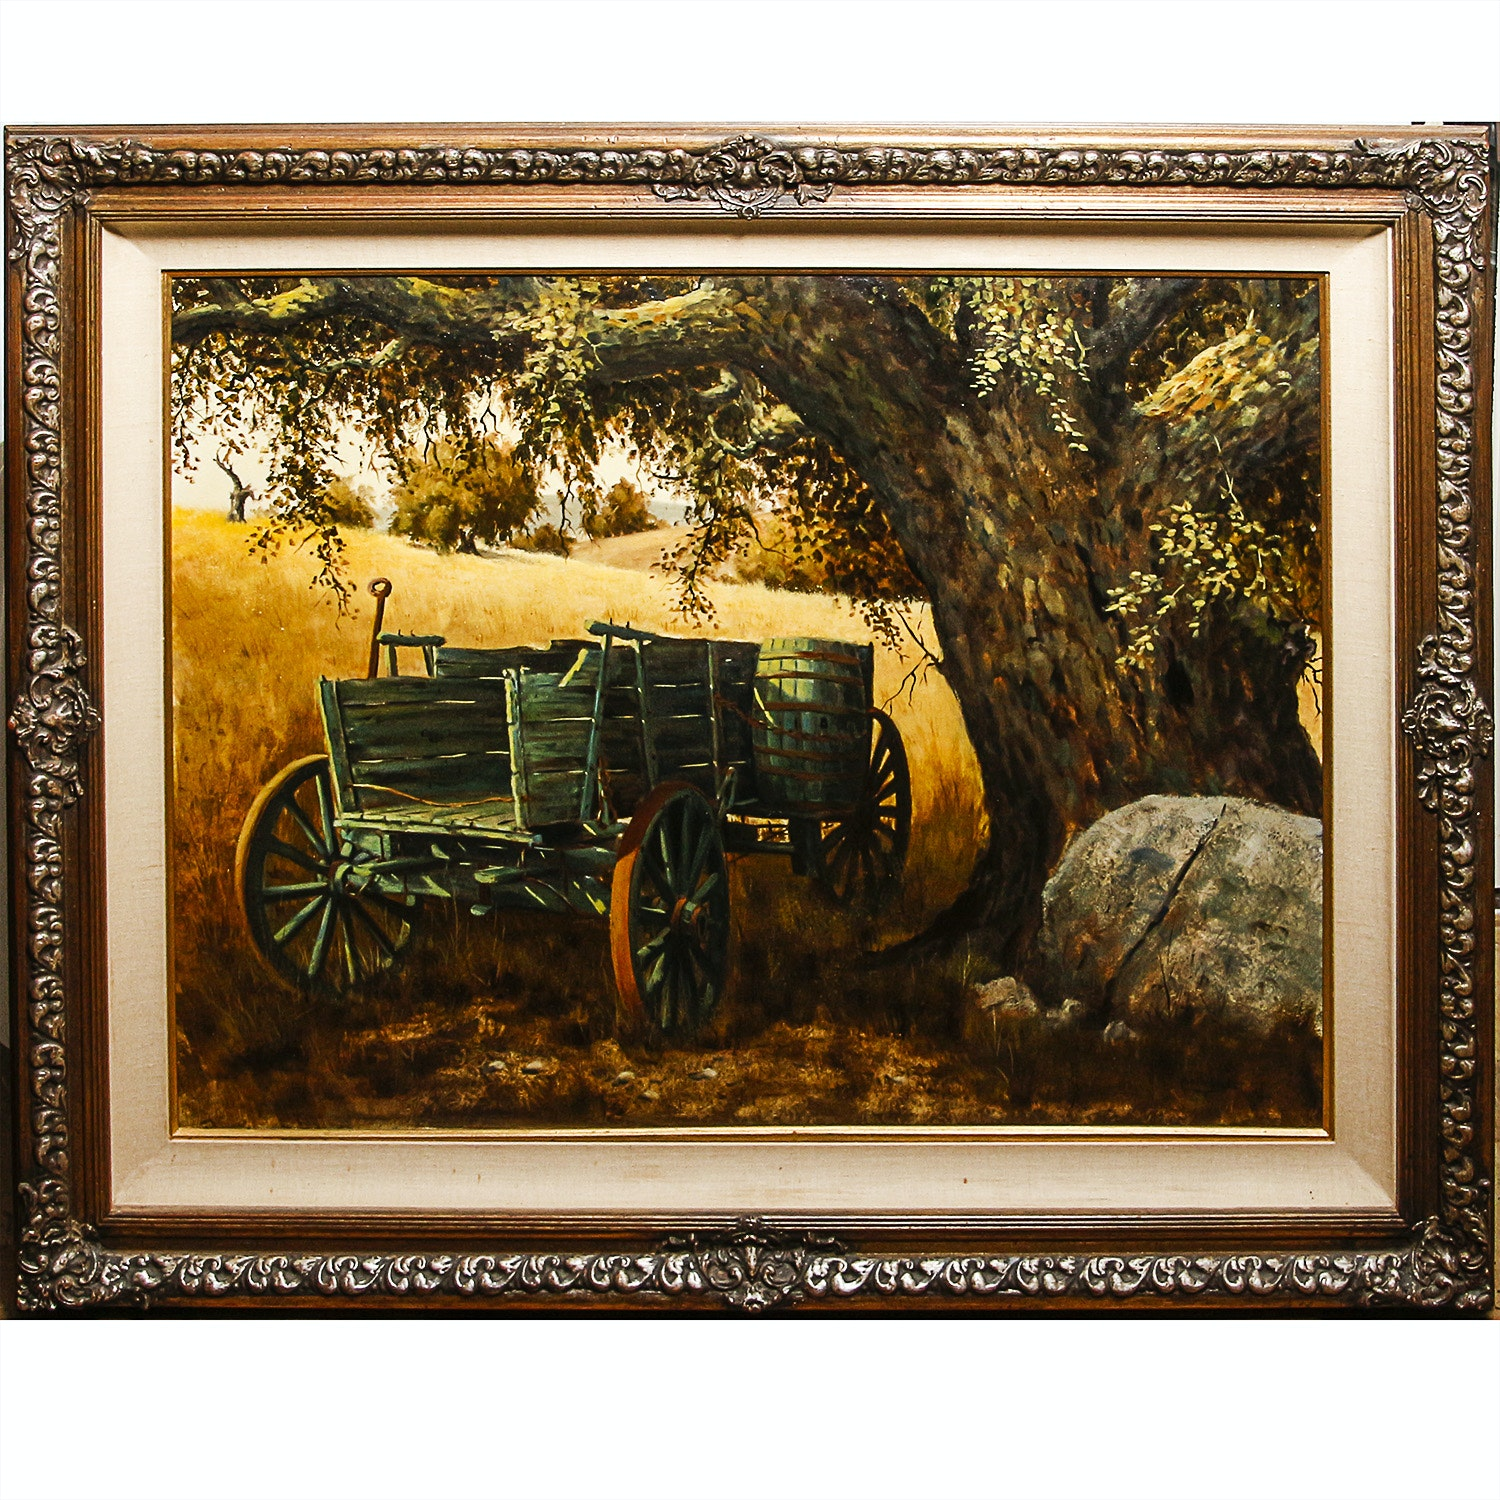 Austin Deuel Oil on Canvas of Wagon in a Field